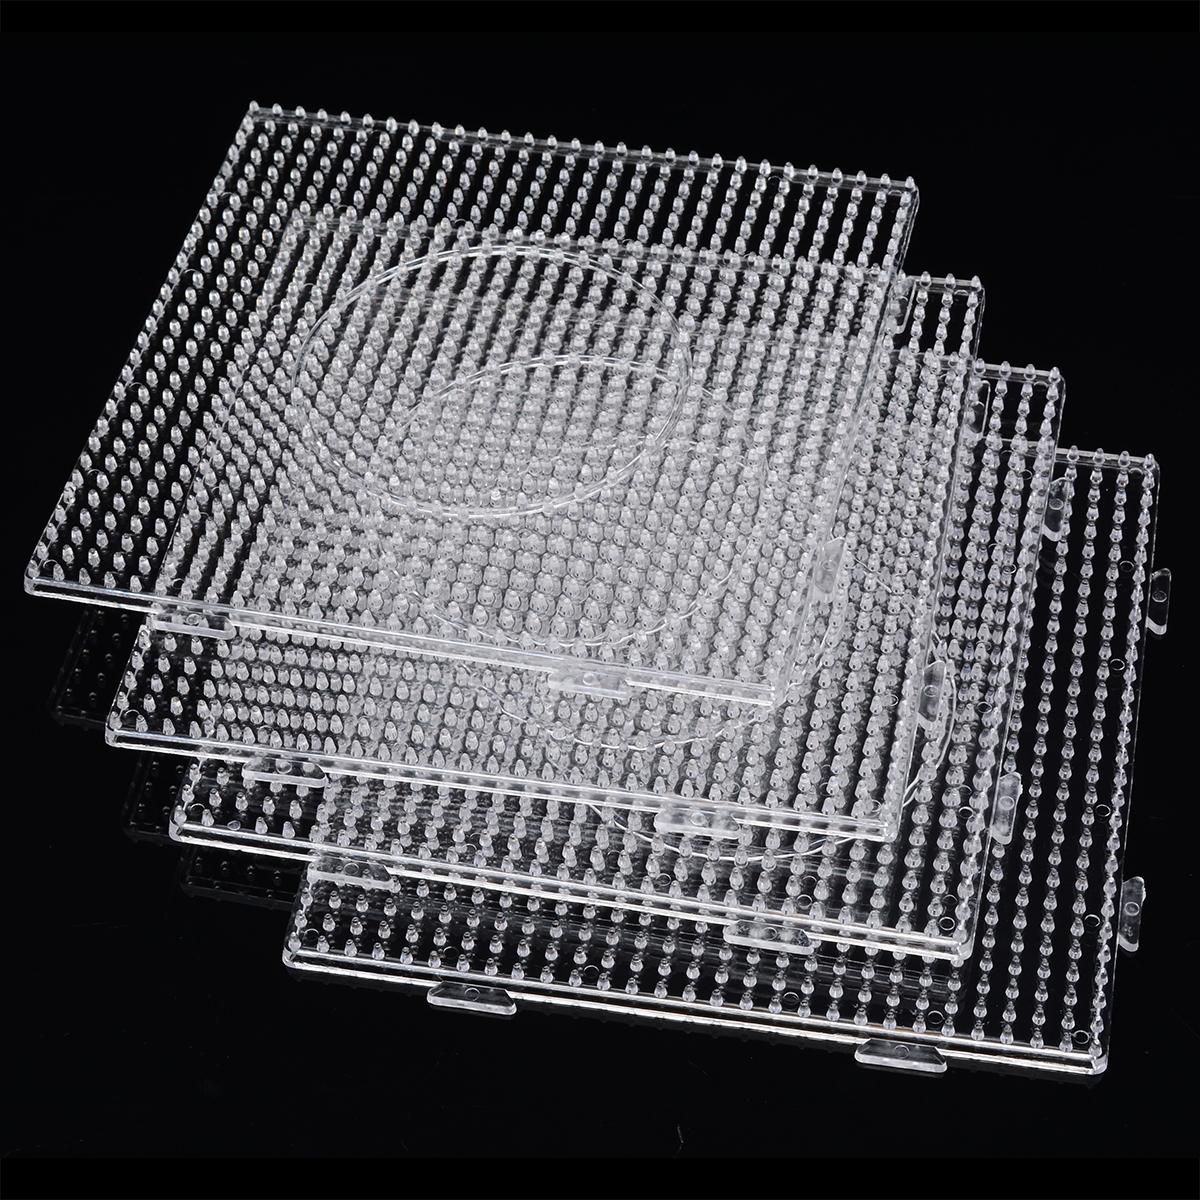 4pcs New Fuse Bead PE Clear Large Square Pegboards Patterns for Hama Fuse Perler Bead DIY Puzzles Kids Craft4pcs New Fuse Bead PE Clear Large Square Pegboards Patterns for Hama Fuse Perler Bead DIY Puzzles Kids Craft